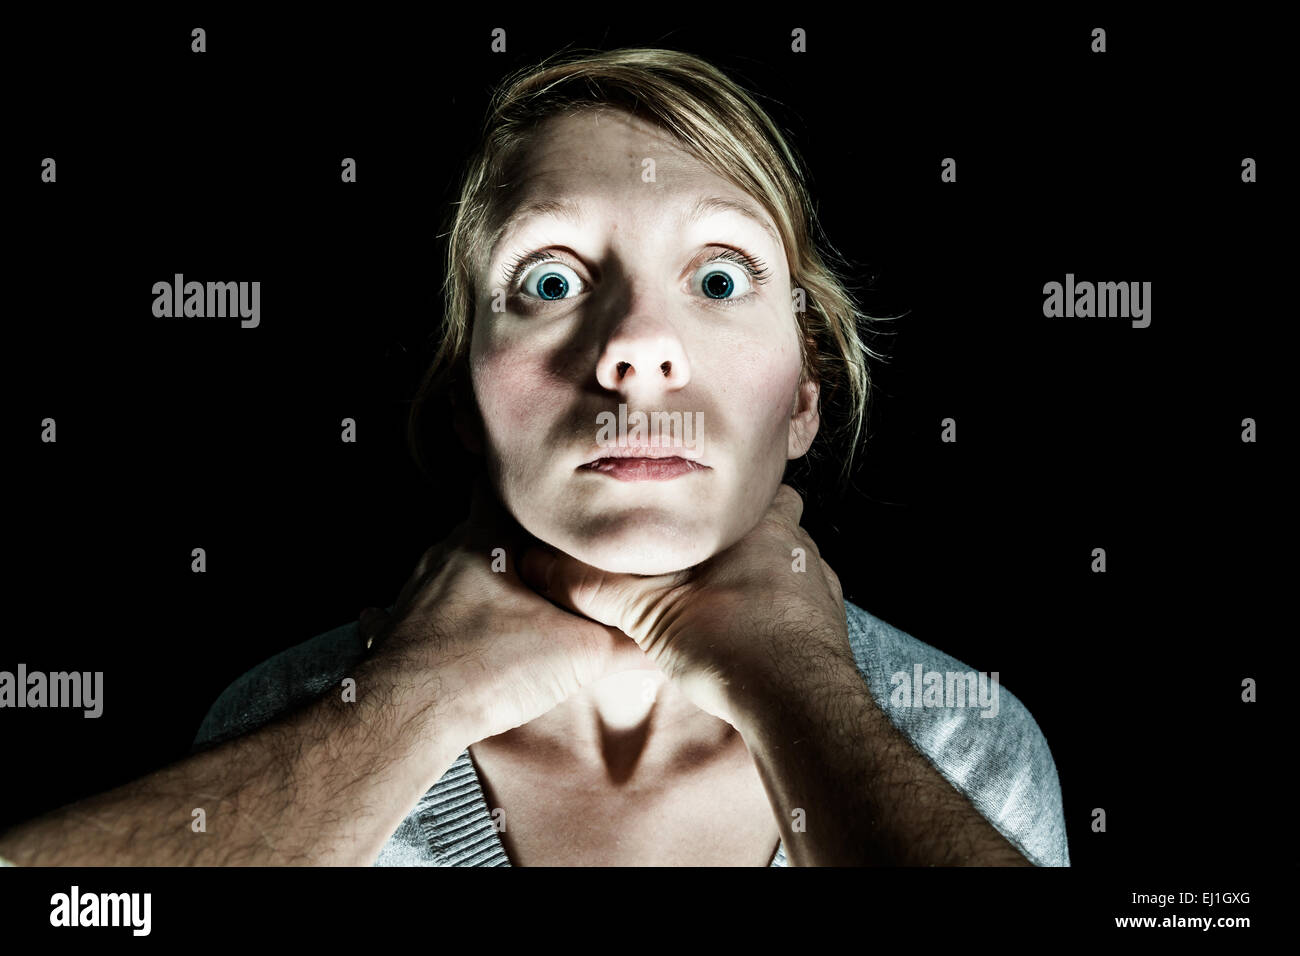 Woman Victim Being Strangle by her Boyfriend - Domestic Violence Concept - Stock Image